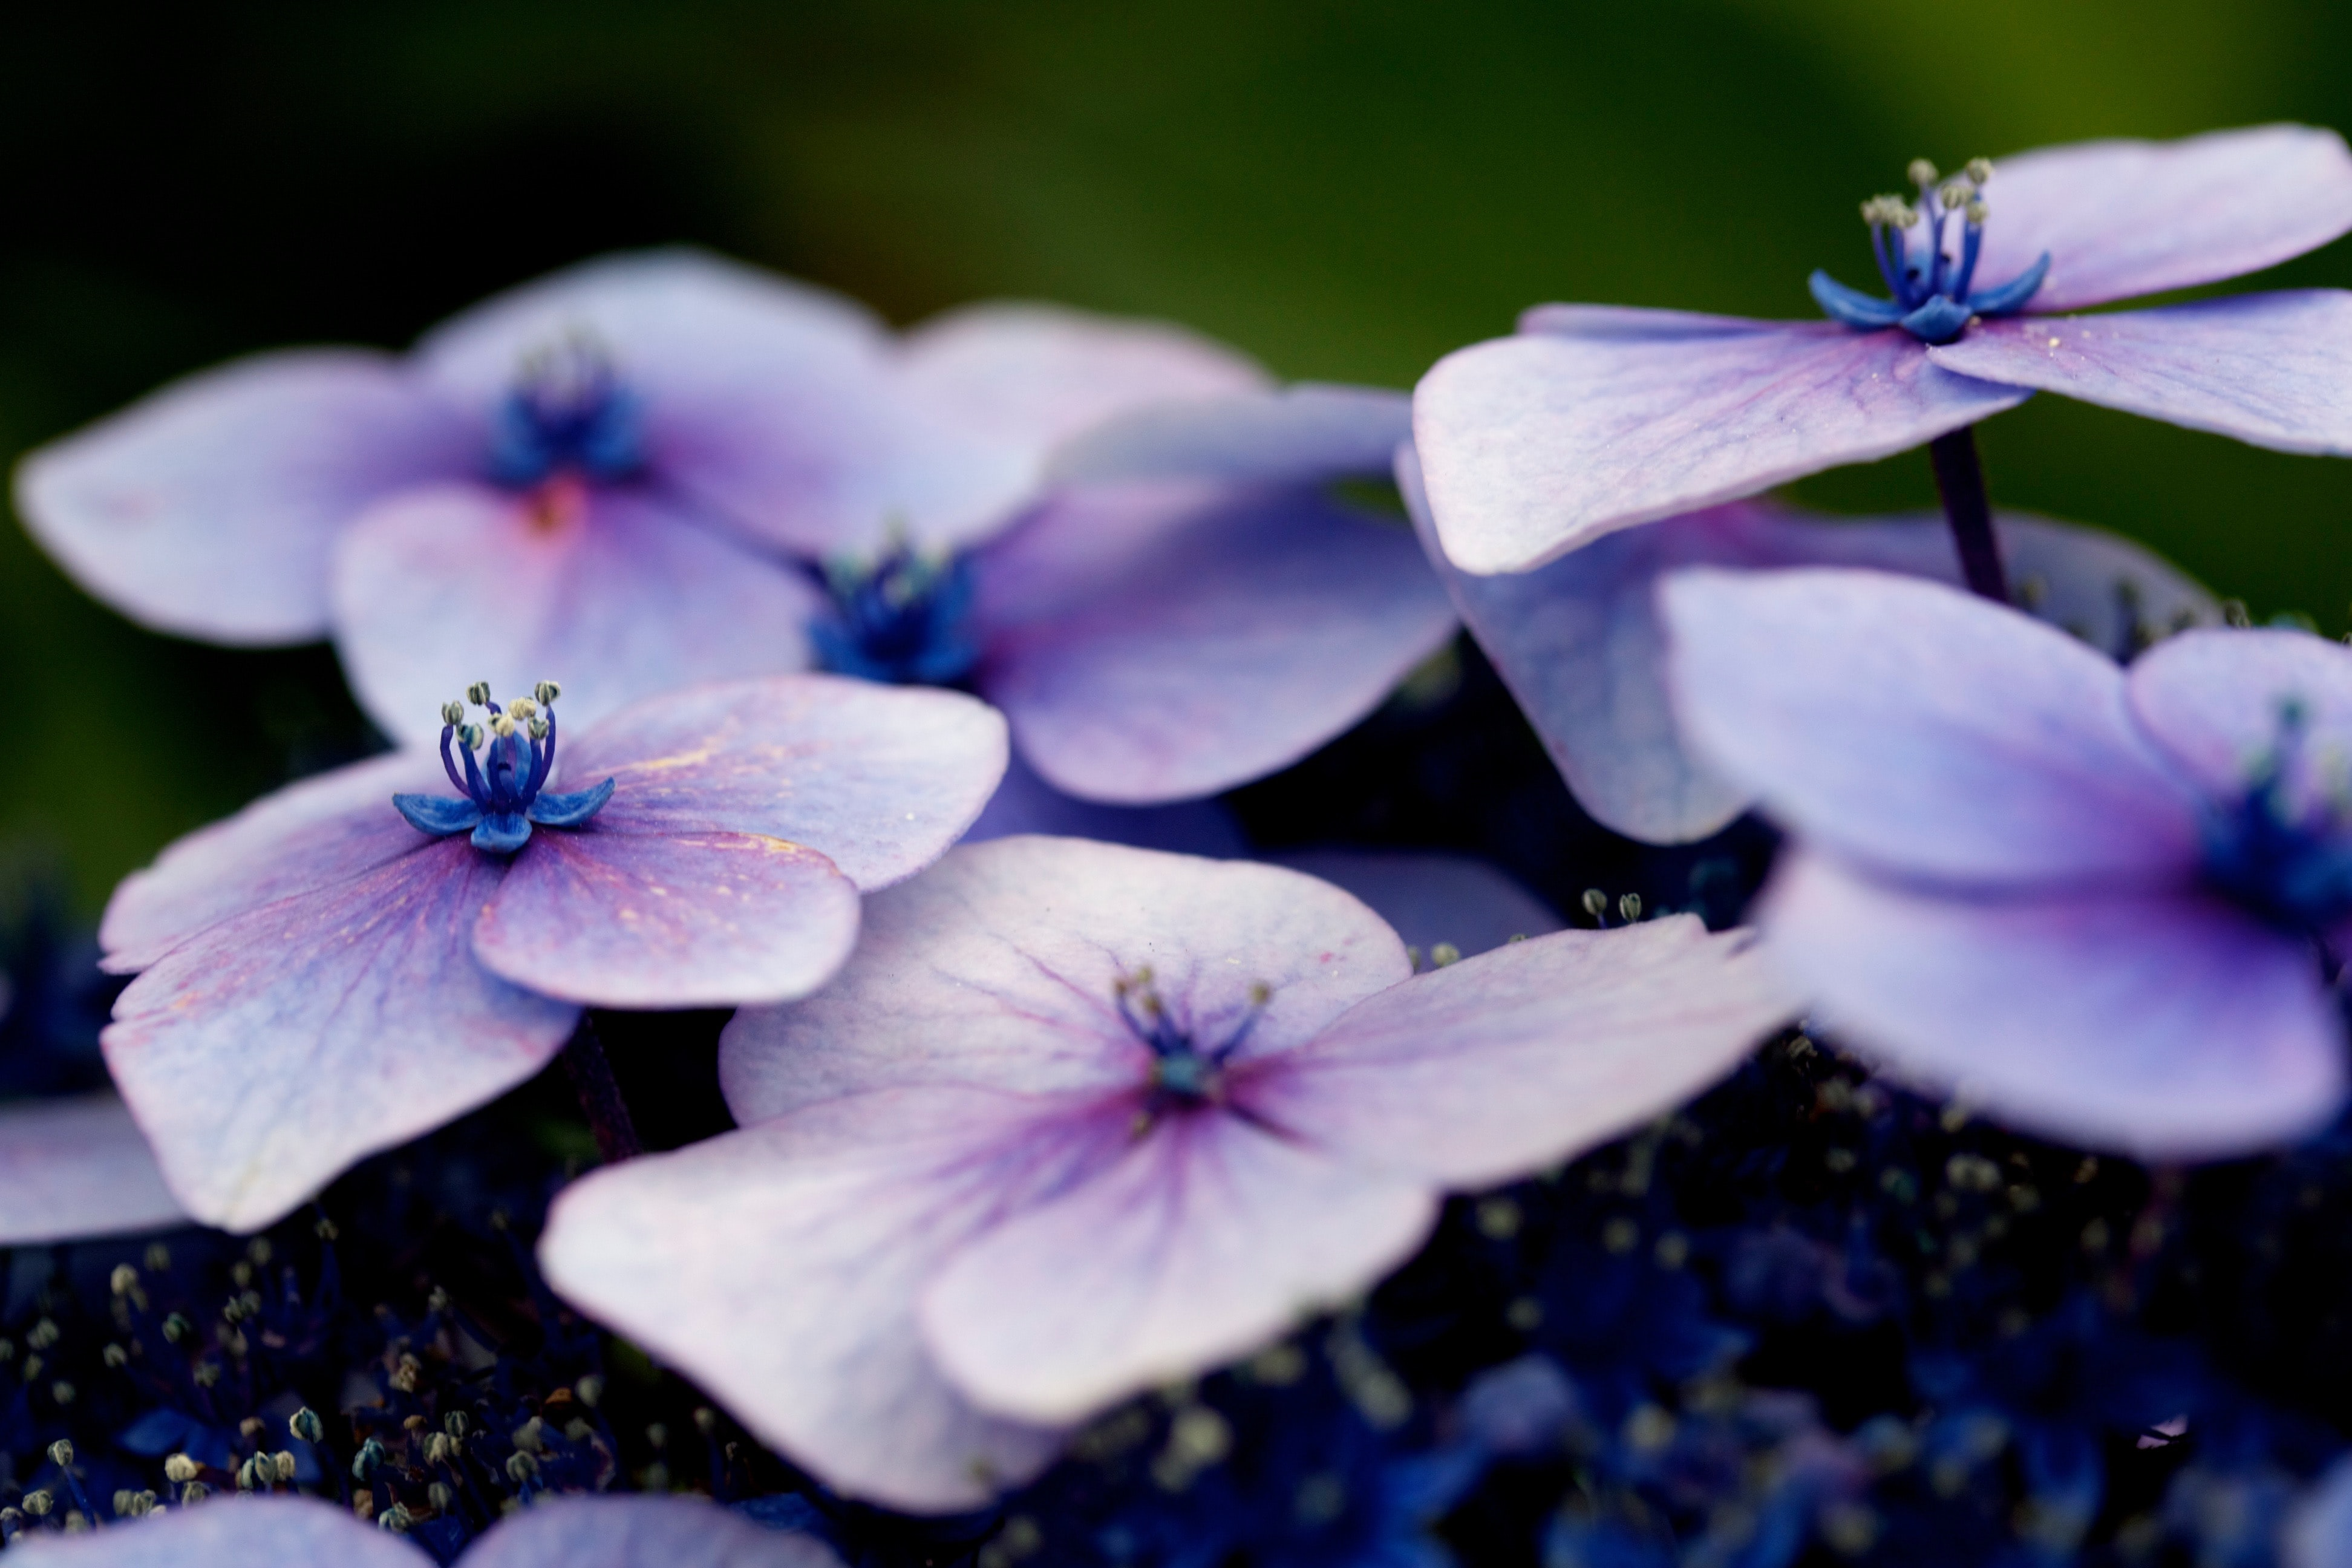 white and purple flowers in shallow focus